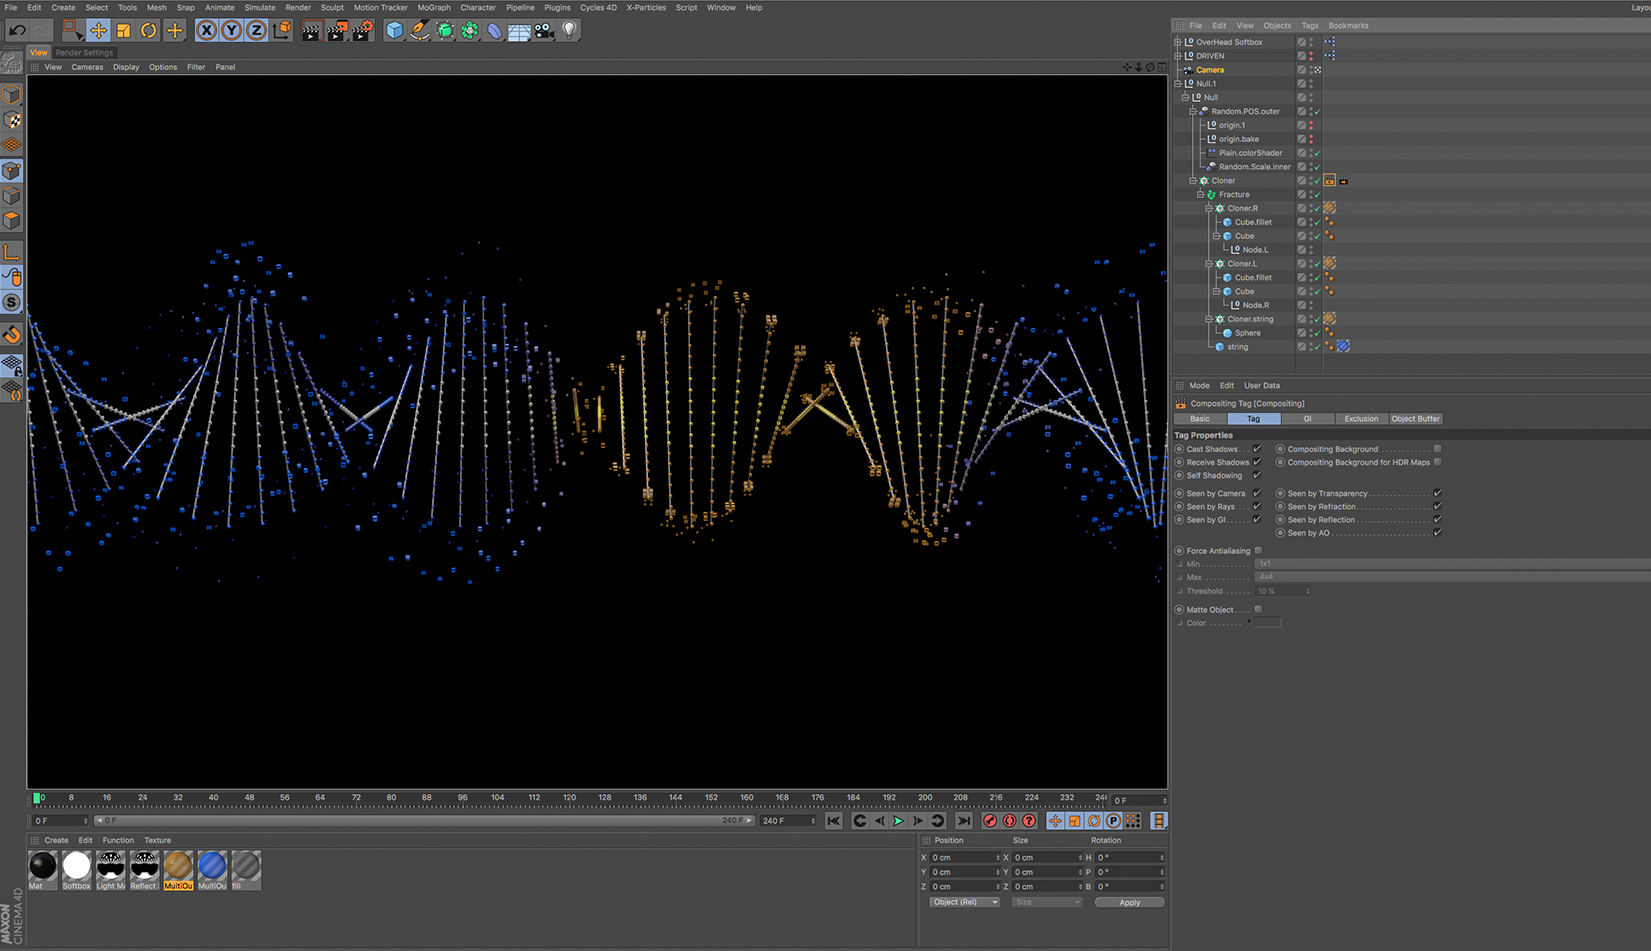 0007_dna-wip-7.png